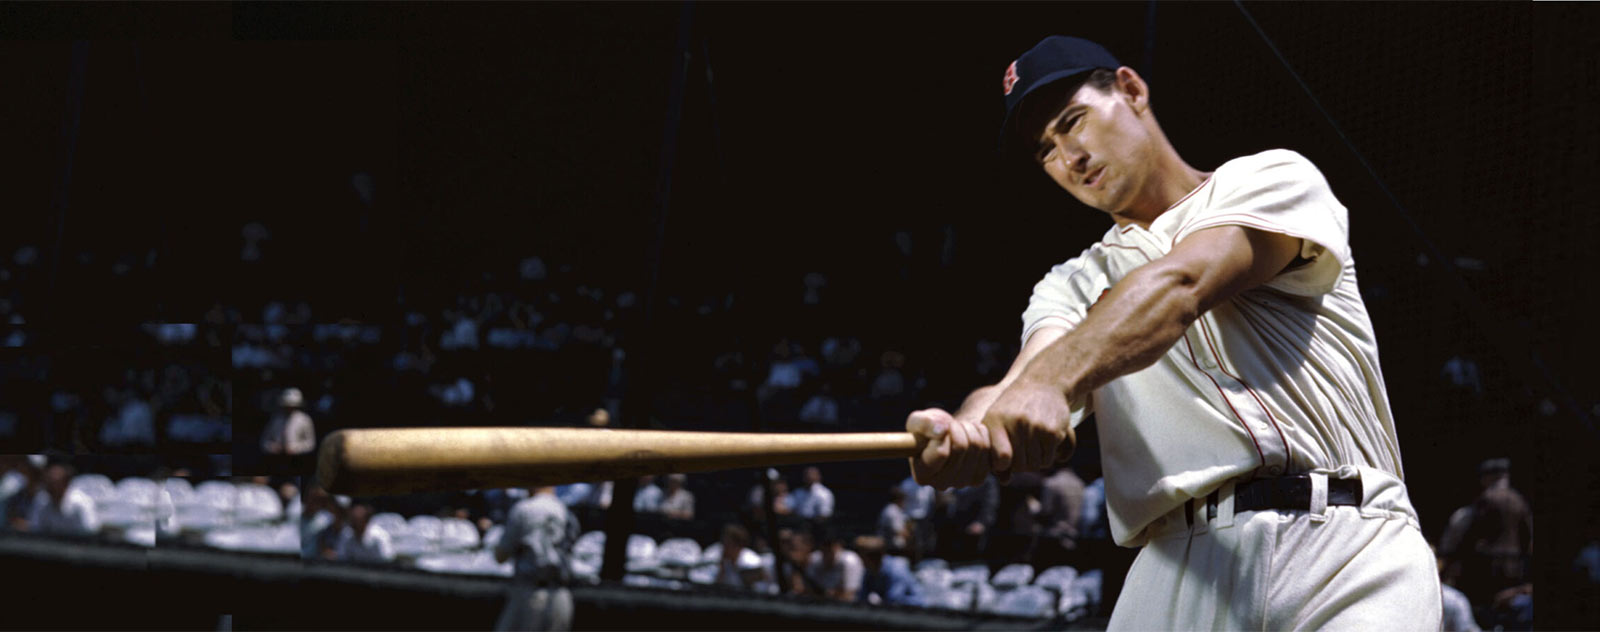 ted williams joueur baseball